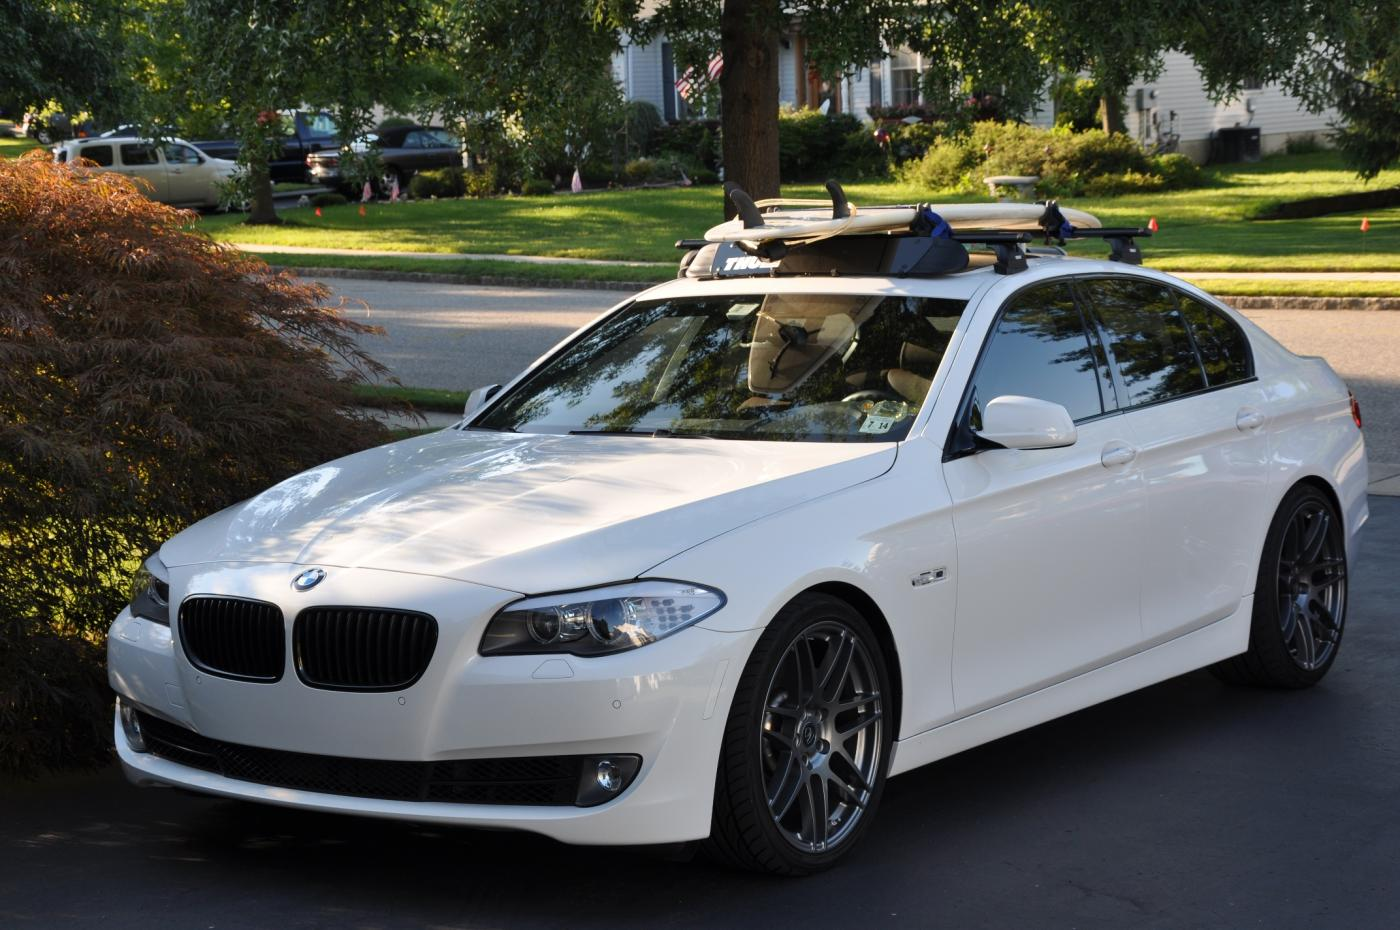 Roof Rack Needed For F10 Page 2